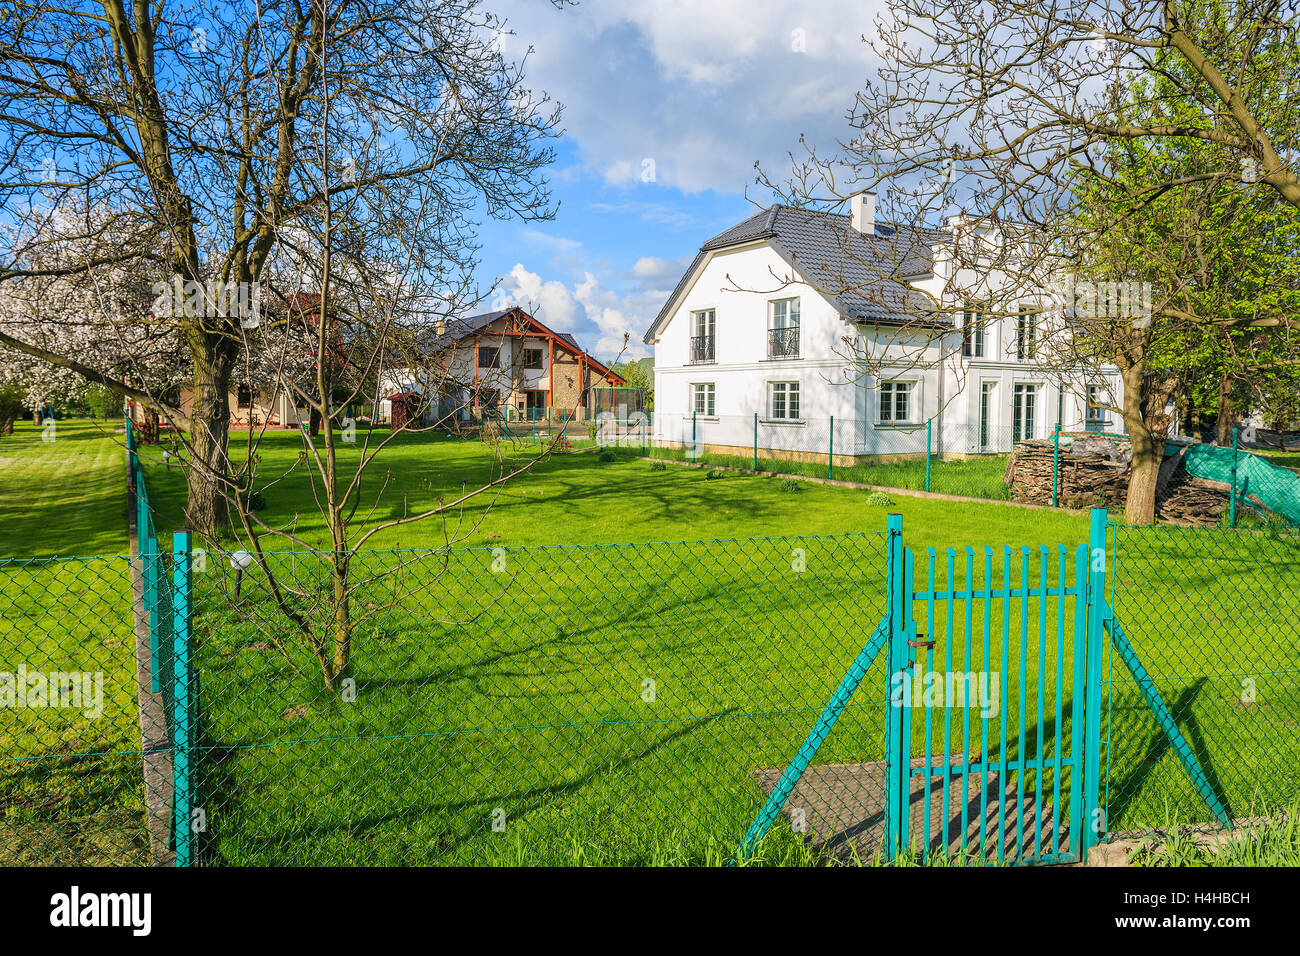 KRAKOW, POLAND - MAY 8, 2016: green garden of luxury house in Krakow ...